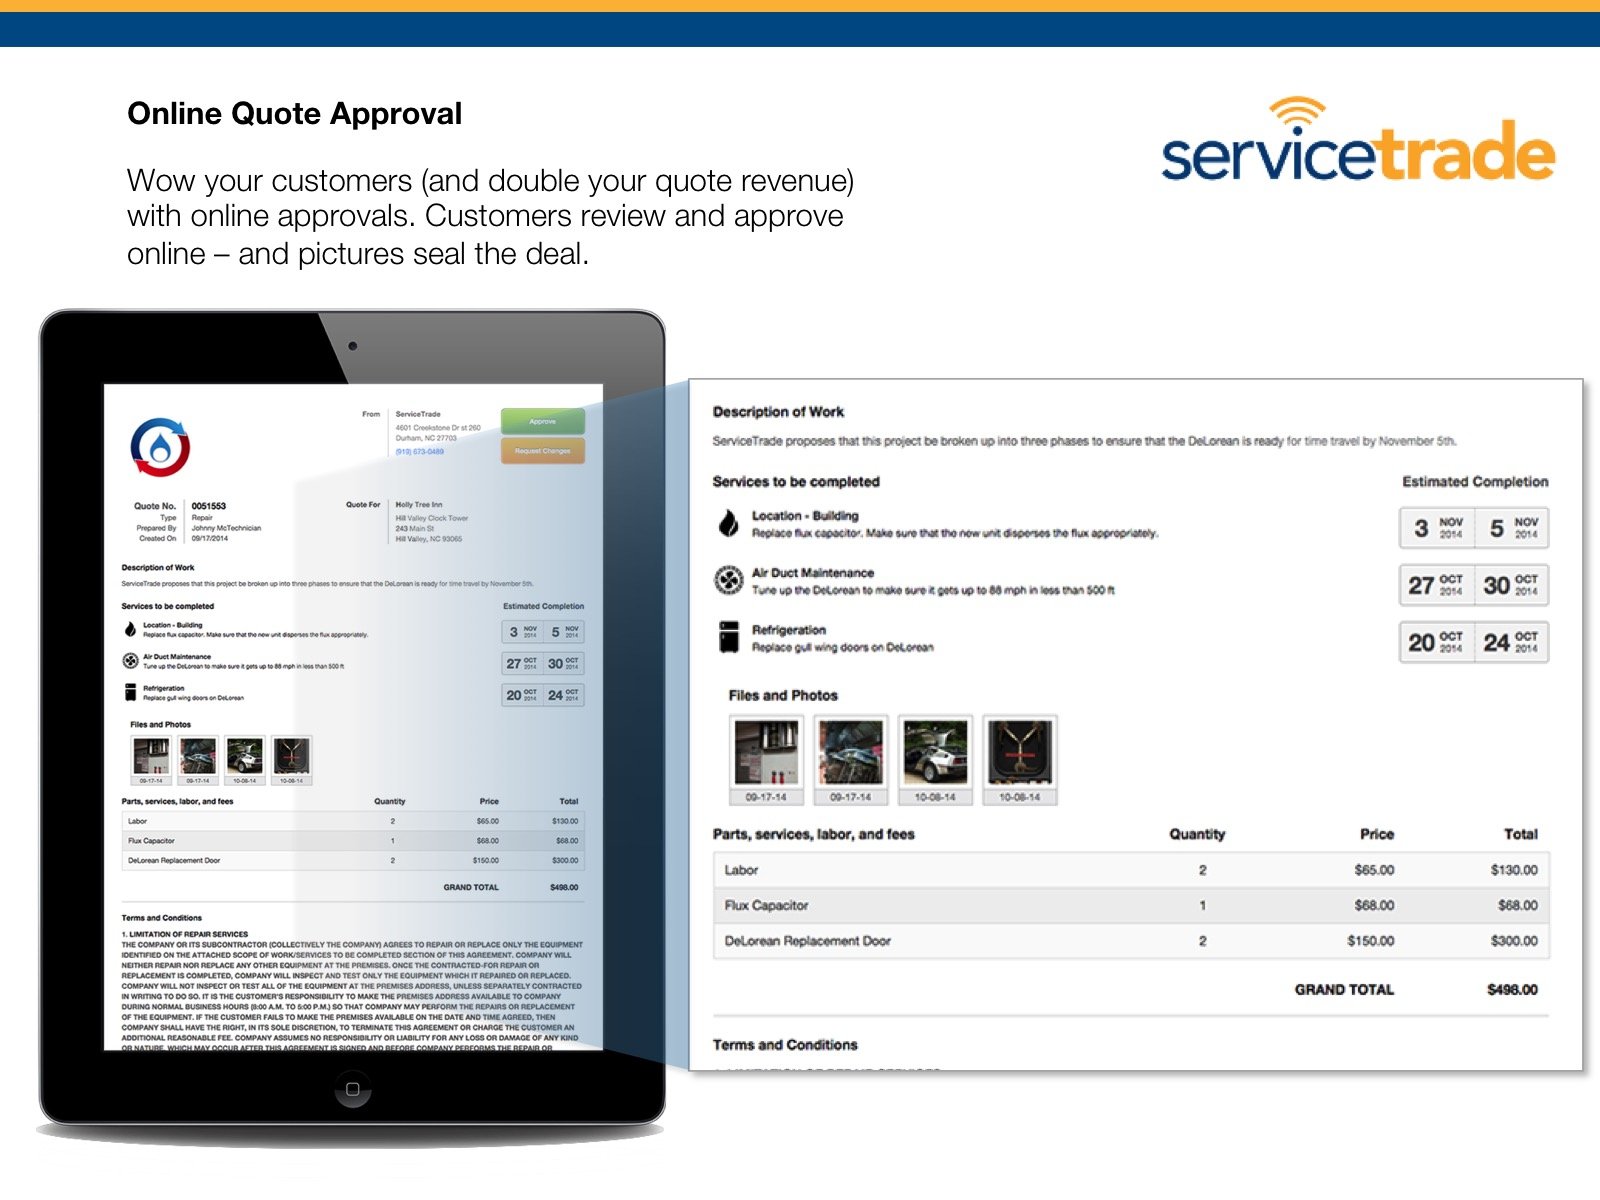 ServiceTrade Demo - Online Quote Approval